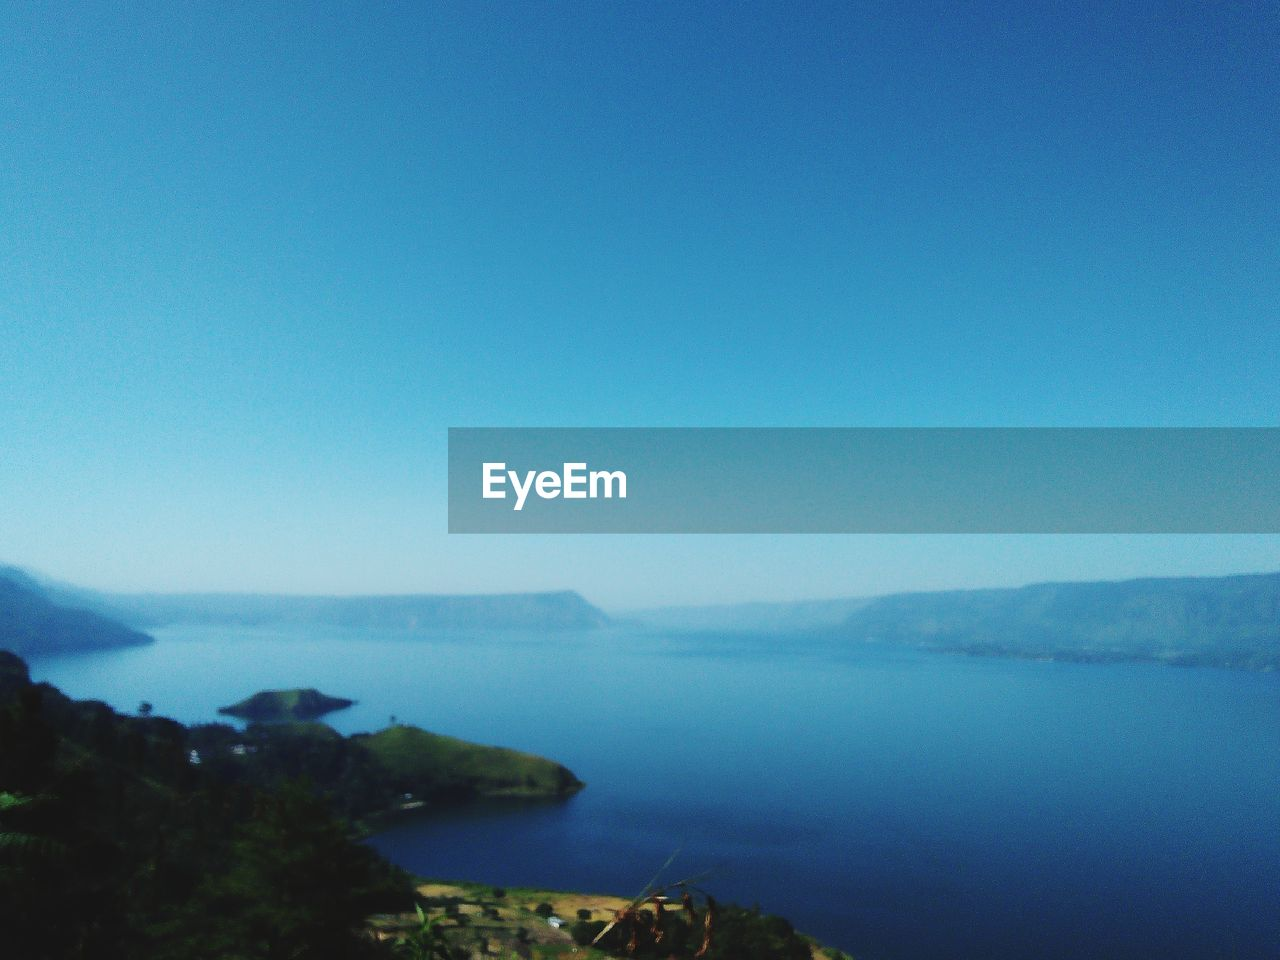 sky, water, copy space, scenics - nature, tranquility, beauty in nature, tranquil scene, nature, blue, sea, no people, mountain, clear sky, day, outdoors, environment, waterfront, landscape